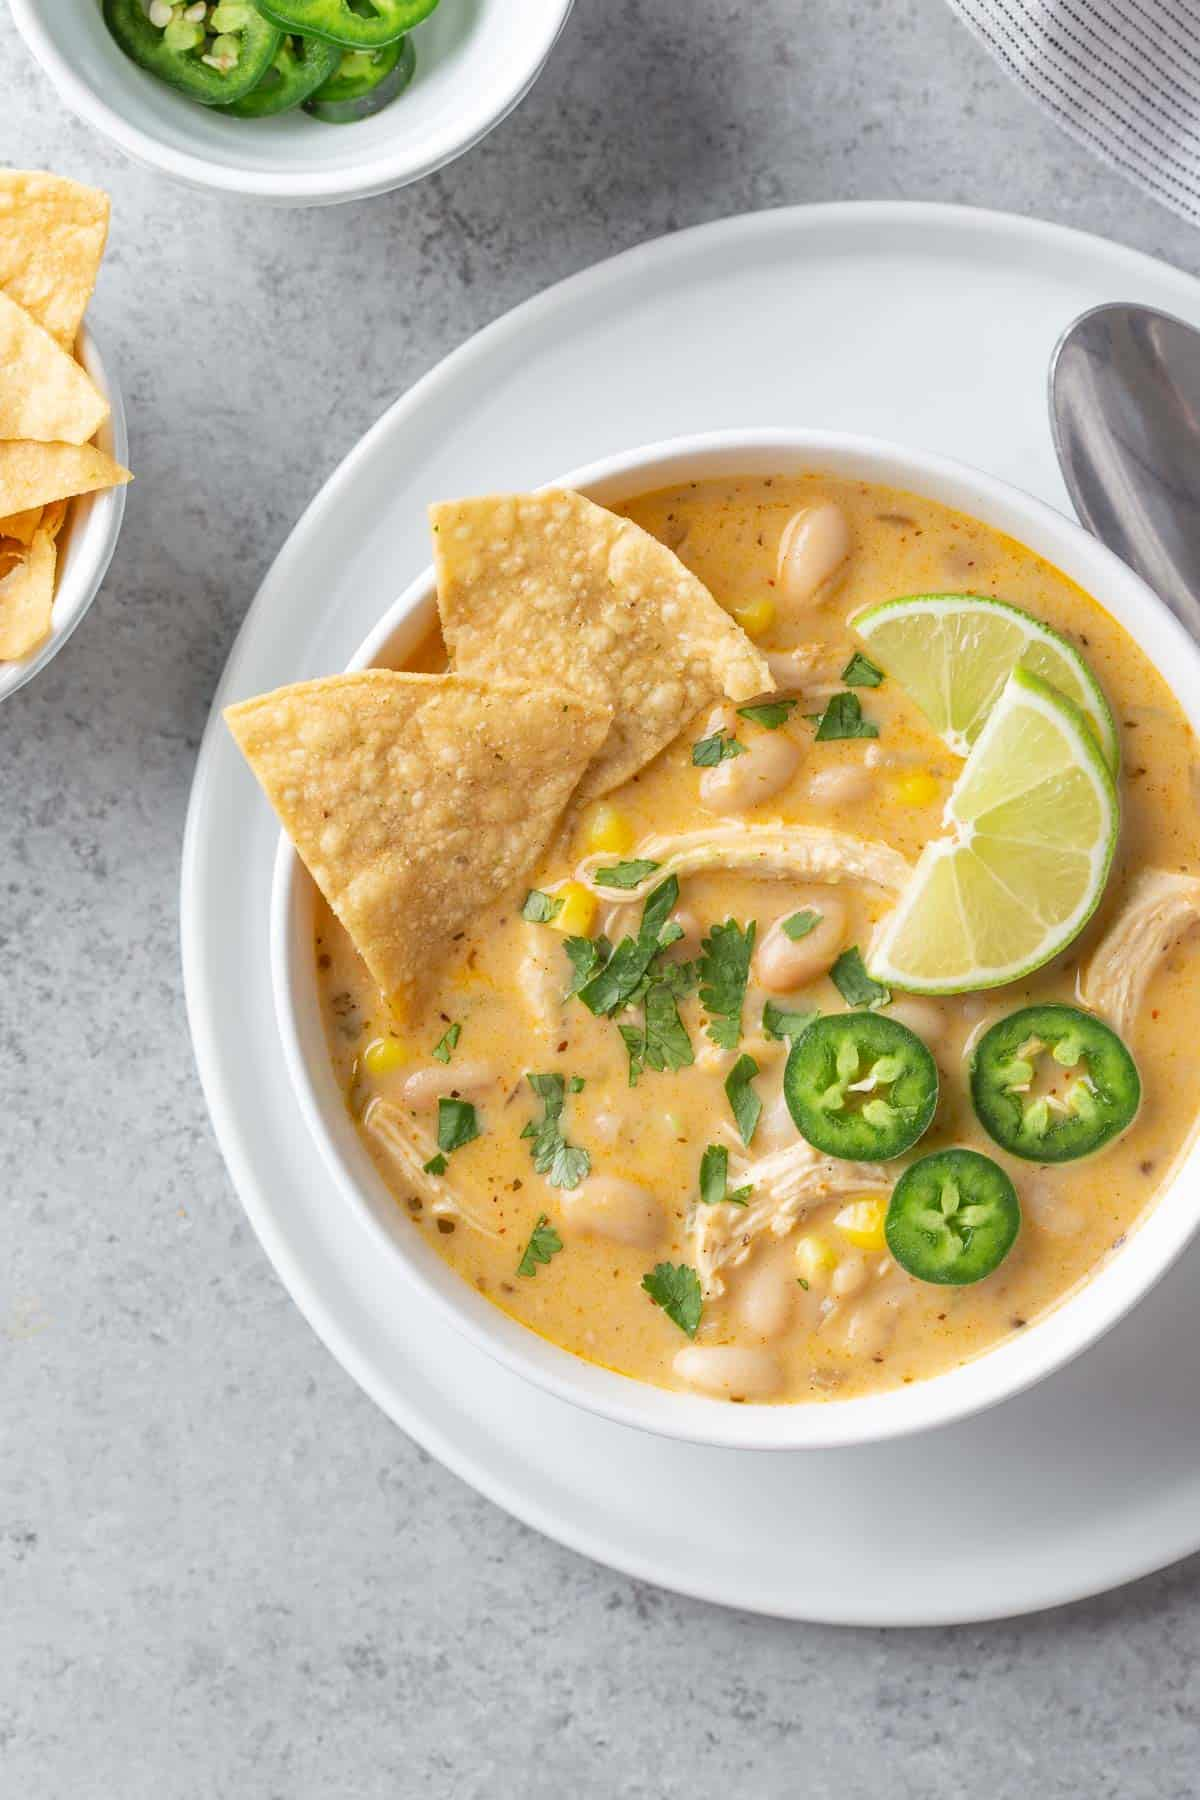 Overhead view of a white bowl of white chicken chili with garnishes.